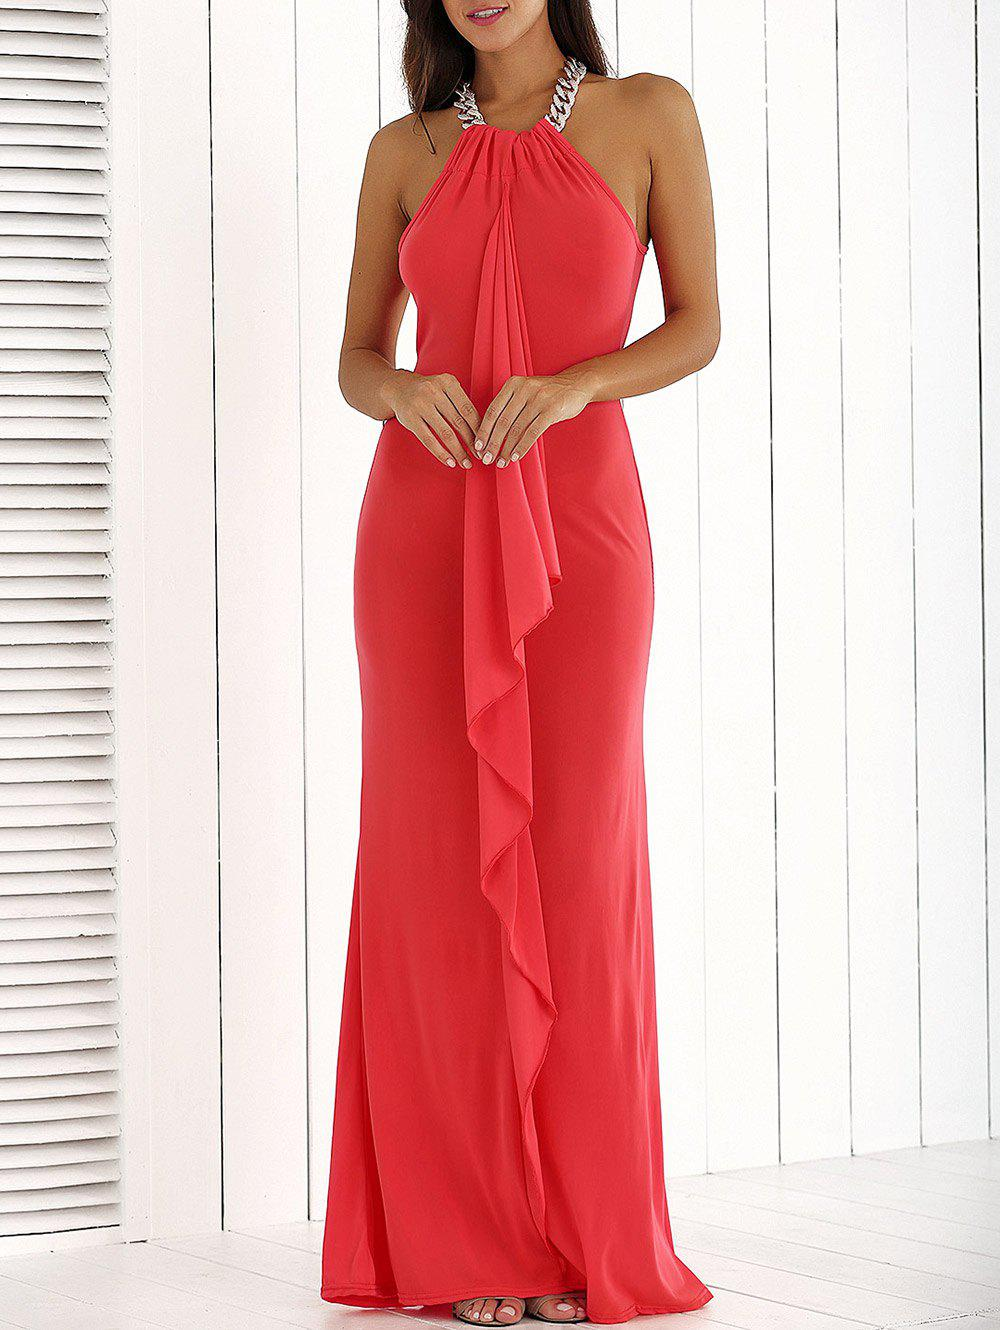 Flounce Long Wedding Party Bridesmaid Dress - RED M